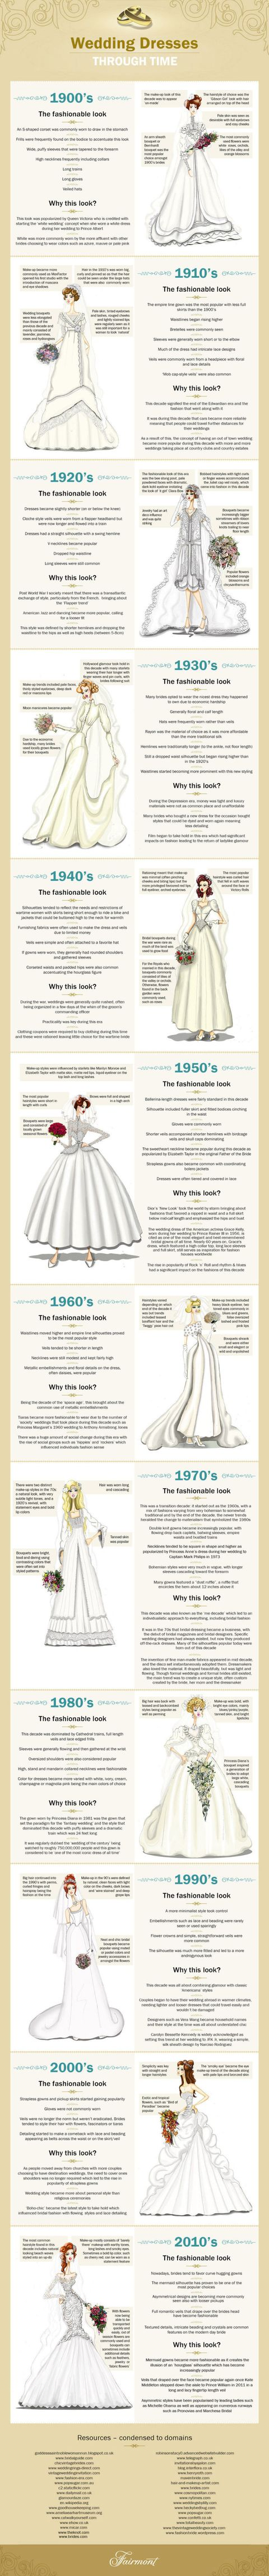 Wedding Dress Trends Through The Years